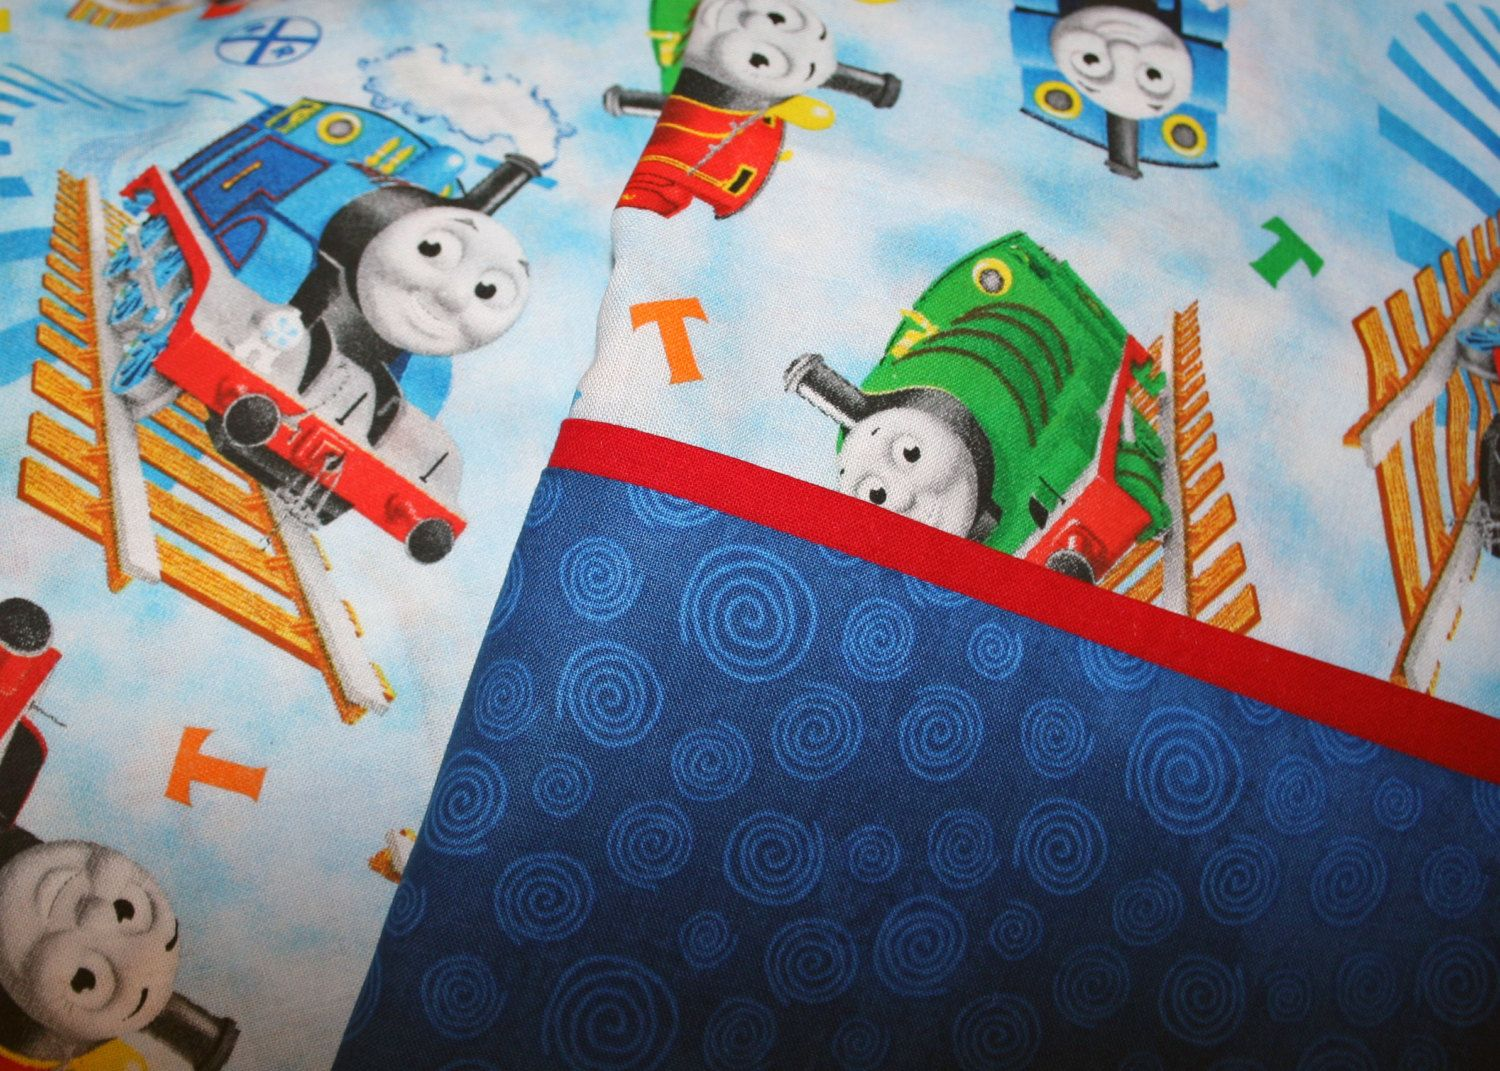 Thomas The Train Pillowcase Glamorous Thomas The Train Pillowcasesewnmyway On Etsy  Stuff To Buy Inspiration